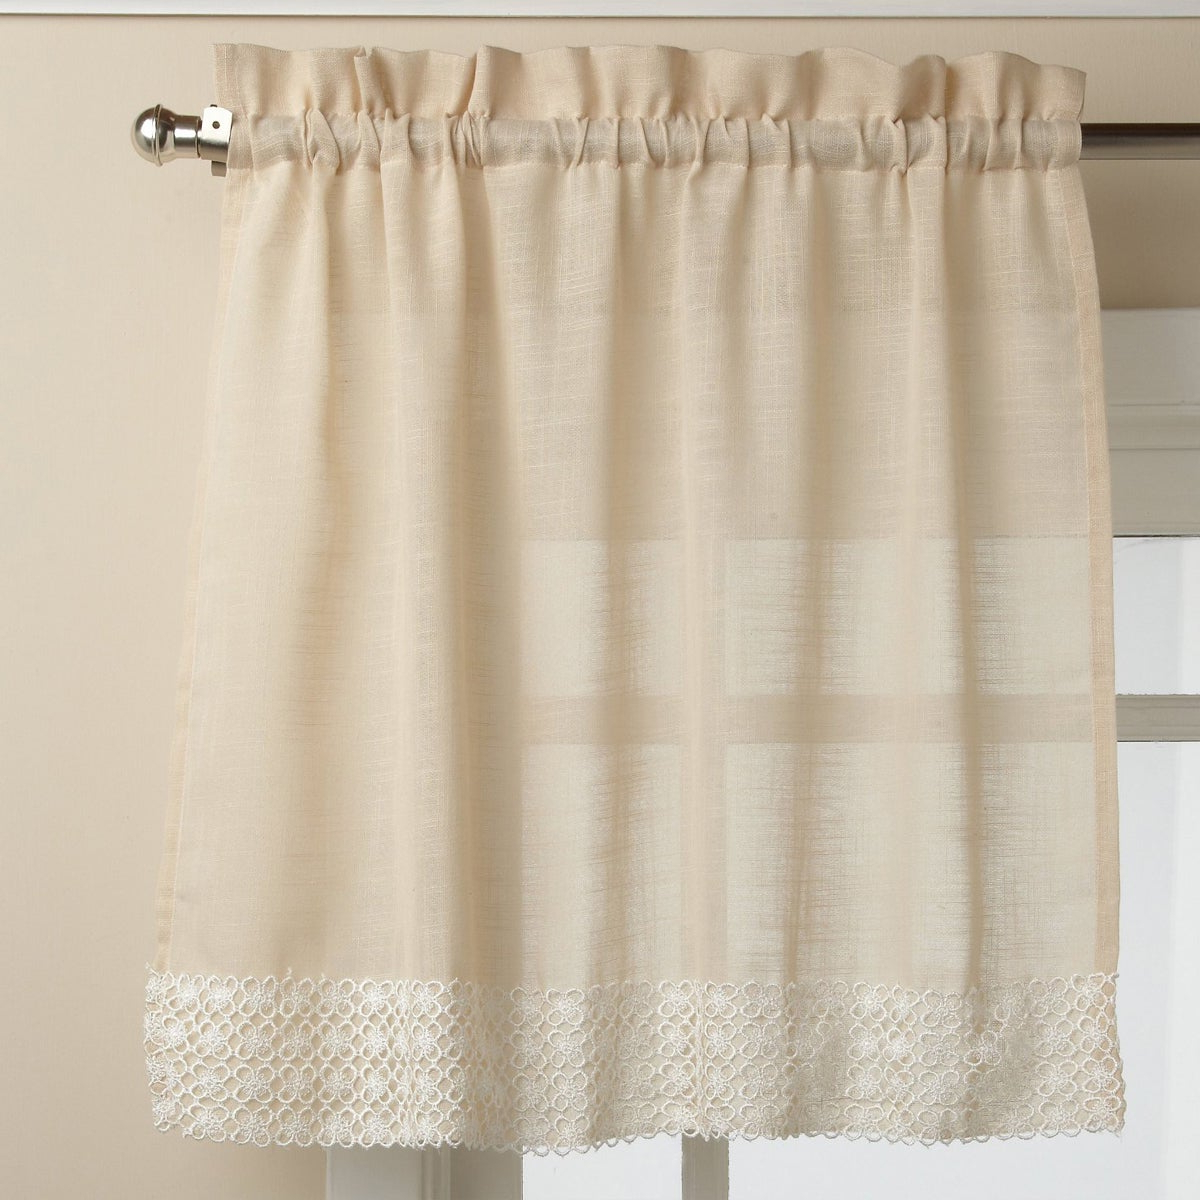 French Vanilla Country Style Curtain Parts With White Daisy Lace Accent   Tier, Swag And Valance Options Inside Popular French Vanilla Country Style Curtain Parts With White Daisy Lace Accent (View 12 of 20)